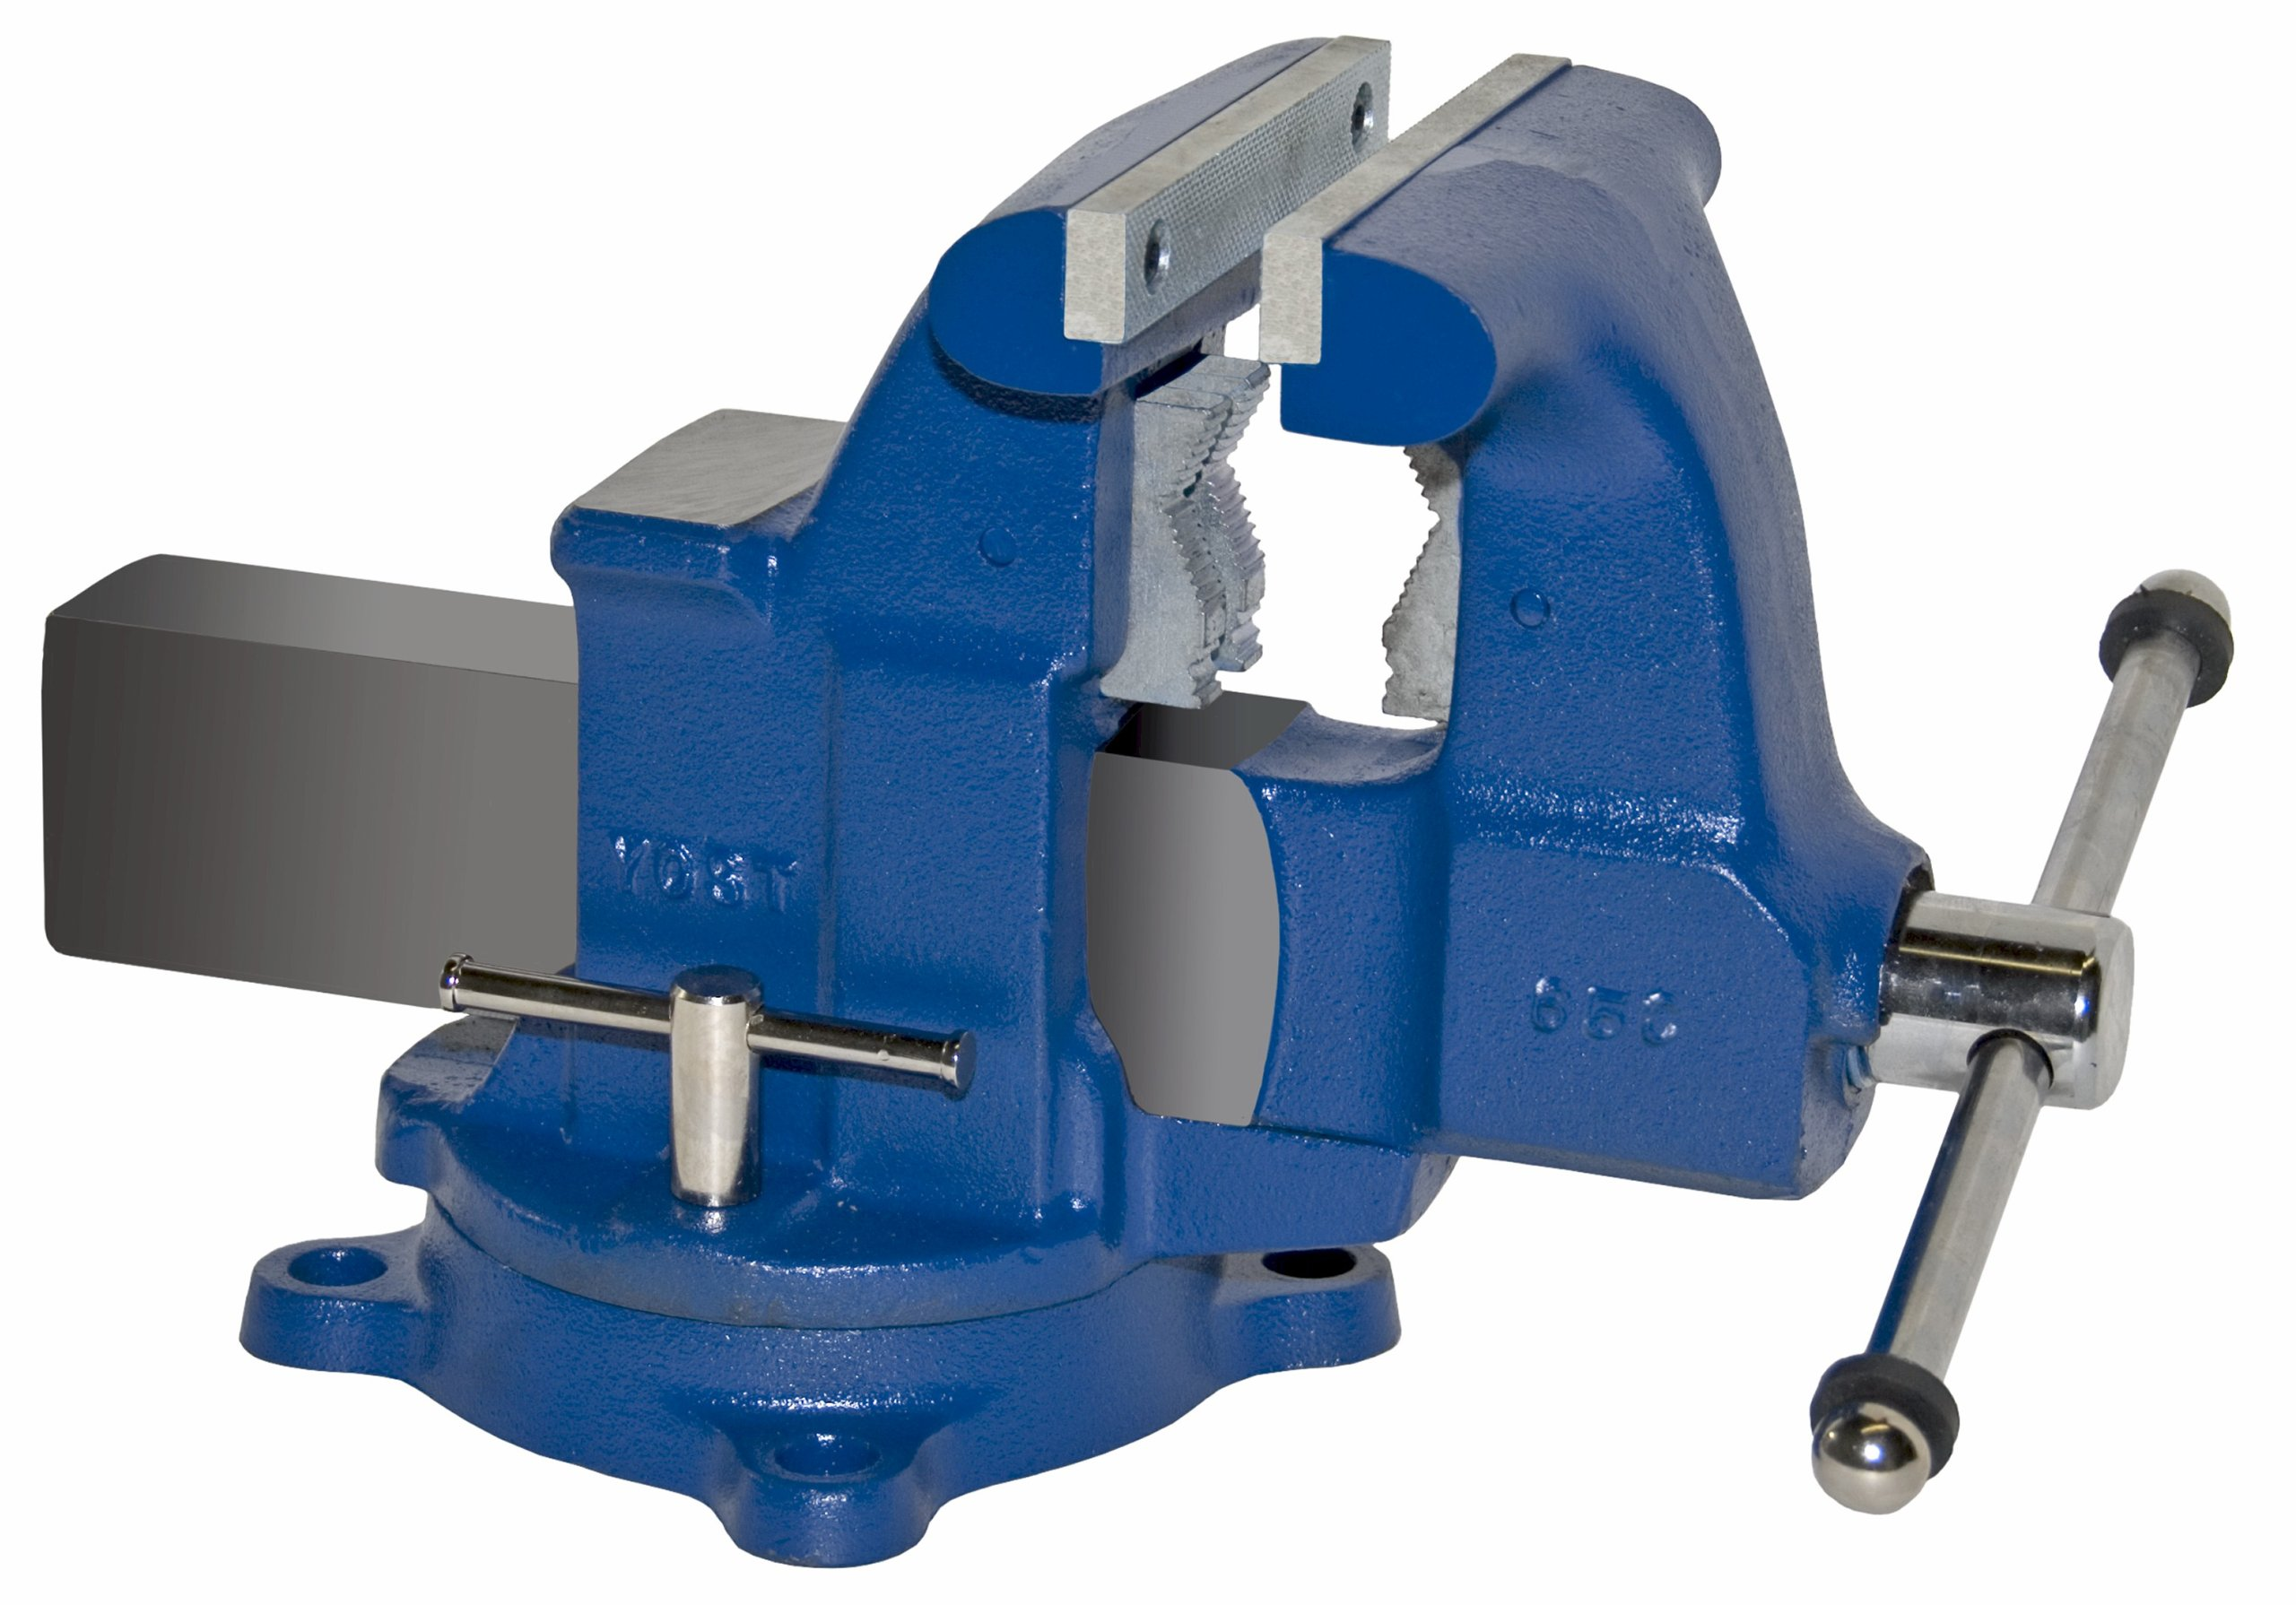 Yost Vises 65C 6.5'' Tradesman Series Industrial Grade  Bench Vise Made in USA